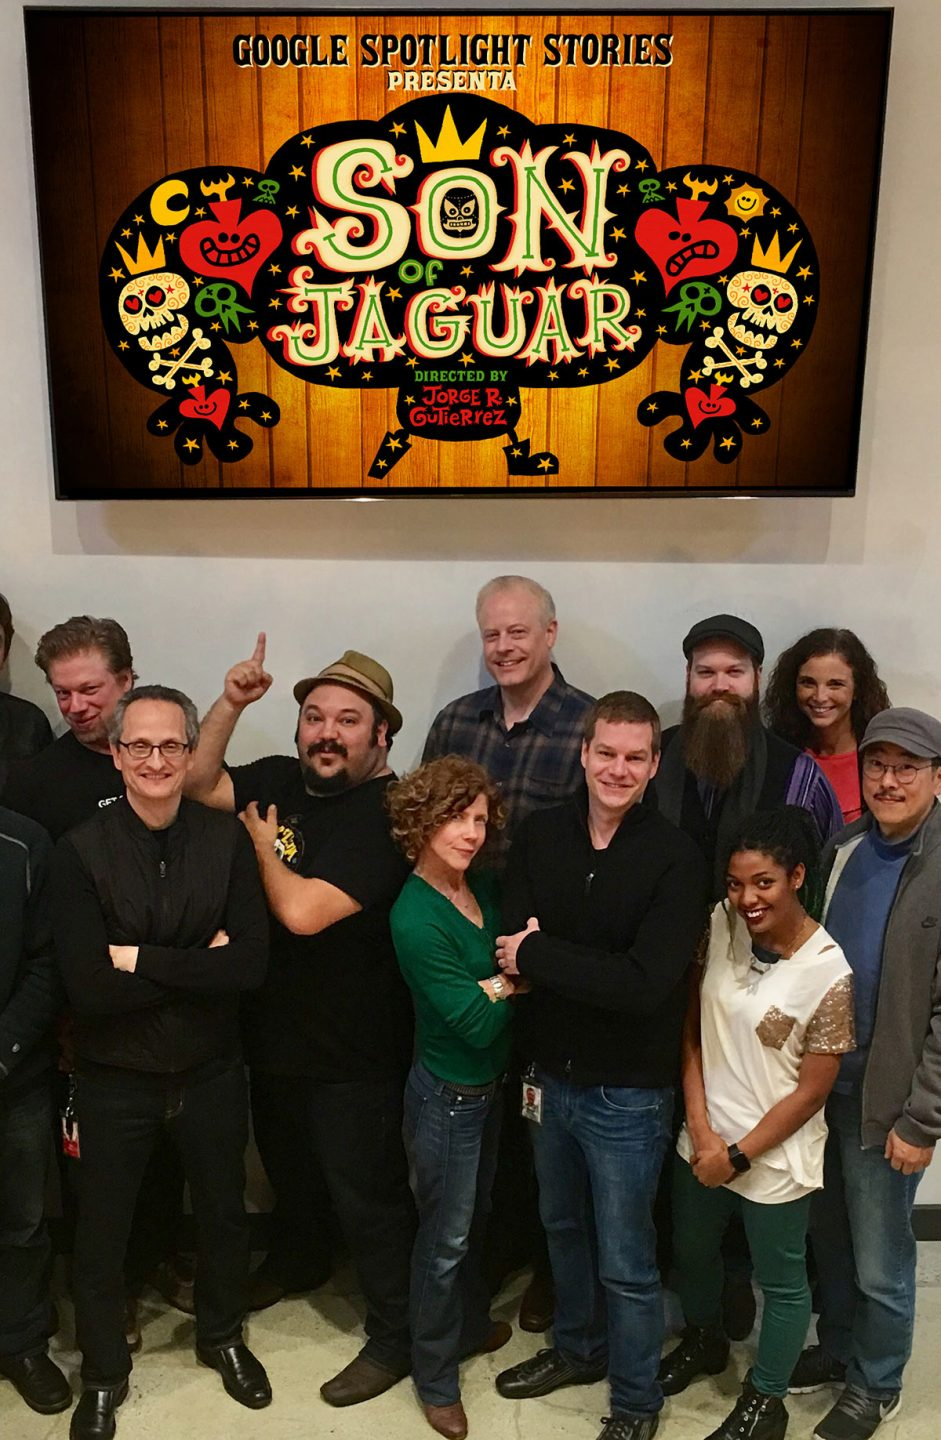 "The Google Spotlight Stories team. In front: creative director Jan Pinkava, Jorge Gutierrez (pointing upward), exec producer Karen Dufilho, and ""Son of Jaguar"" producer David Eisenmann."